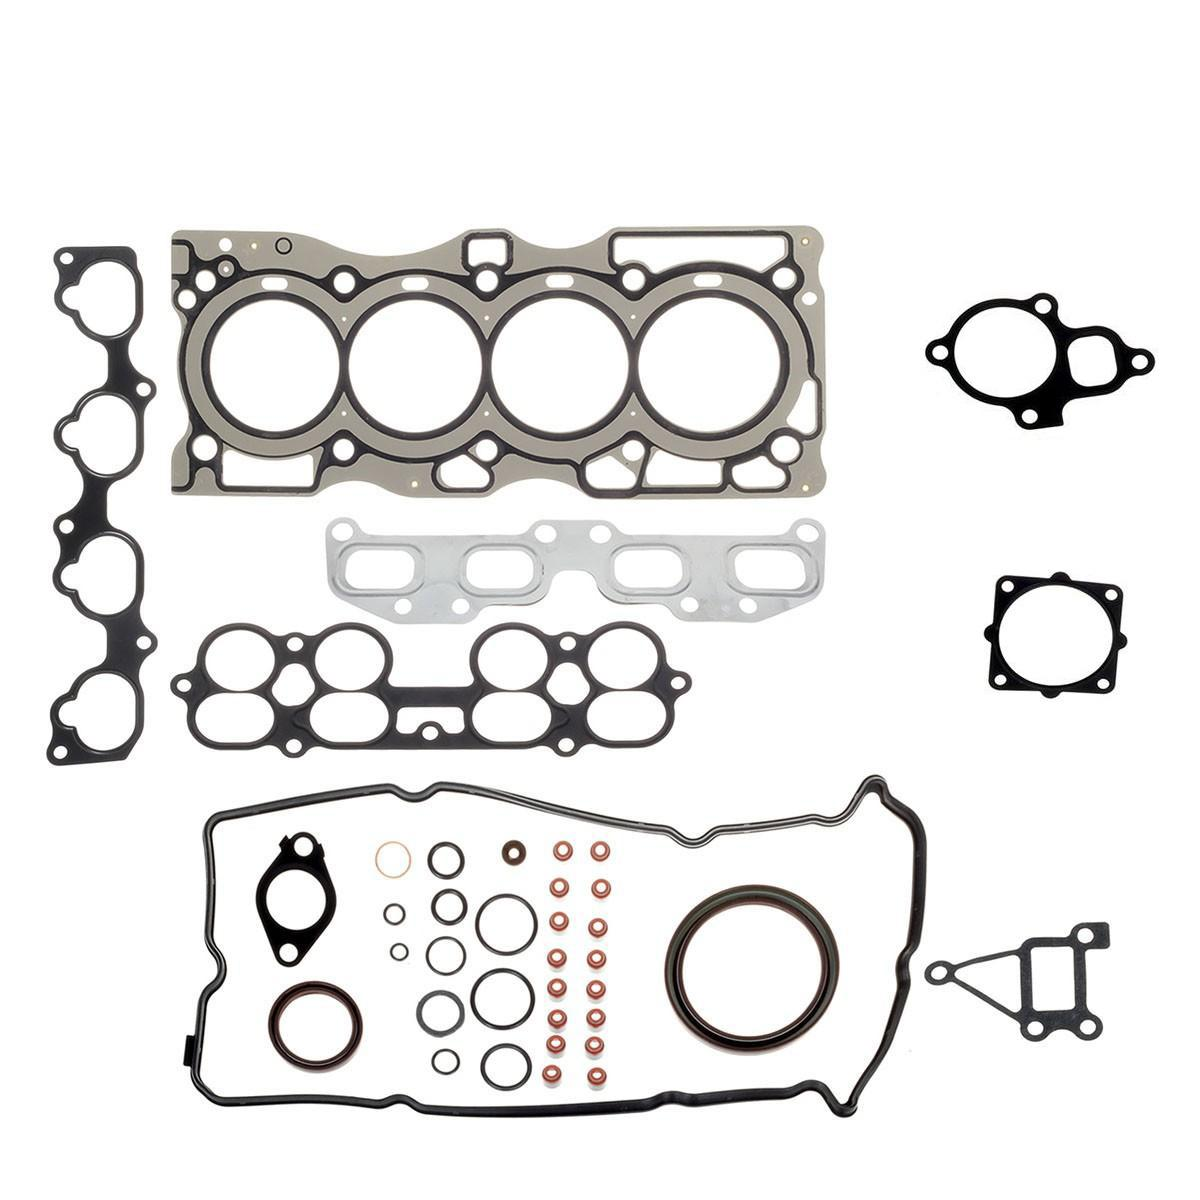 For Nissan Altima Sentra Se R Ser 02 06 2 5l Cylinder Head